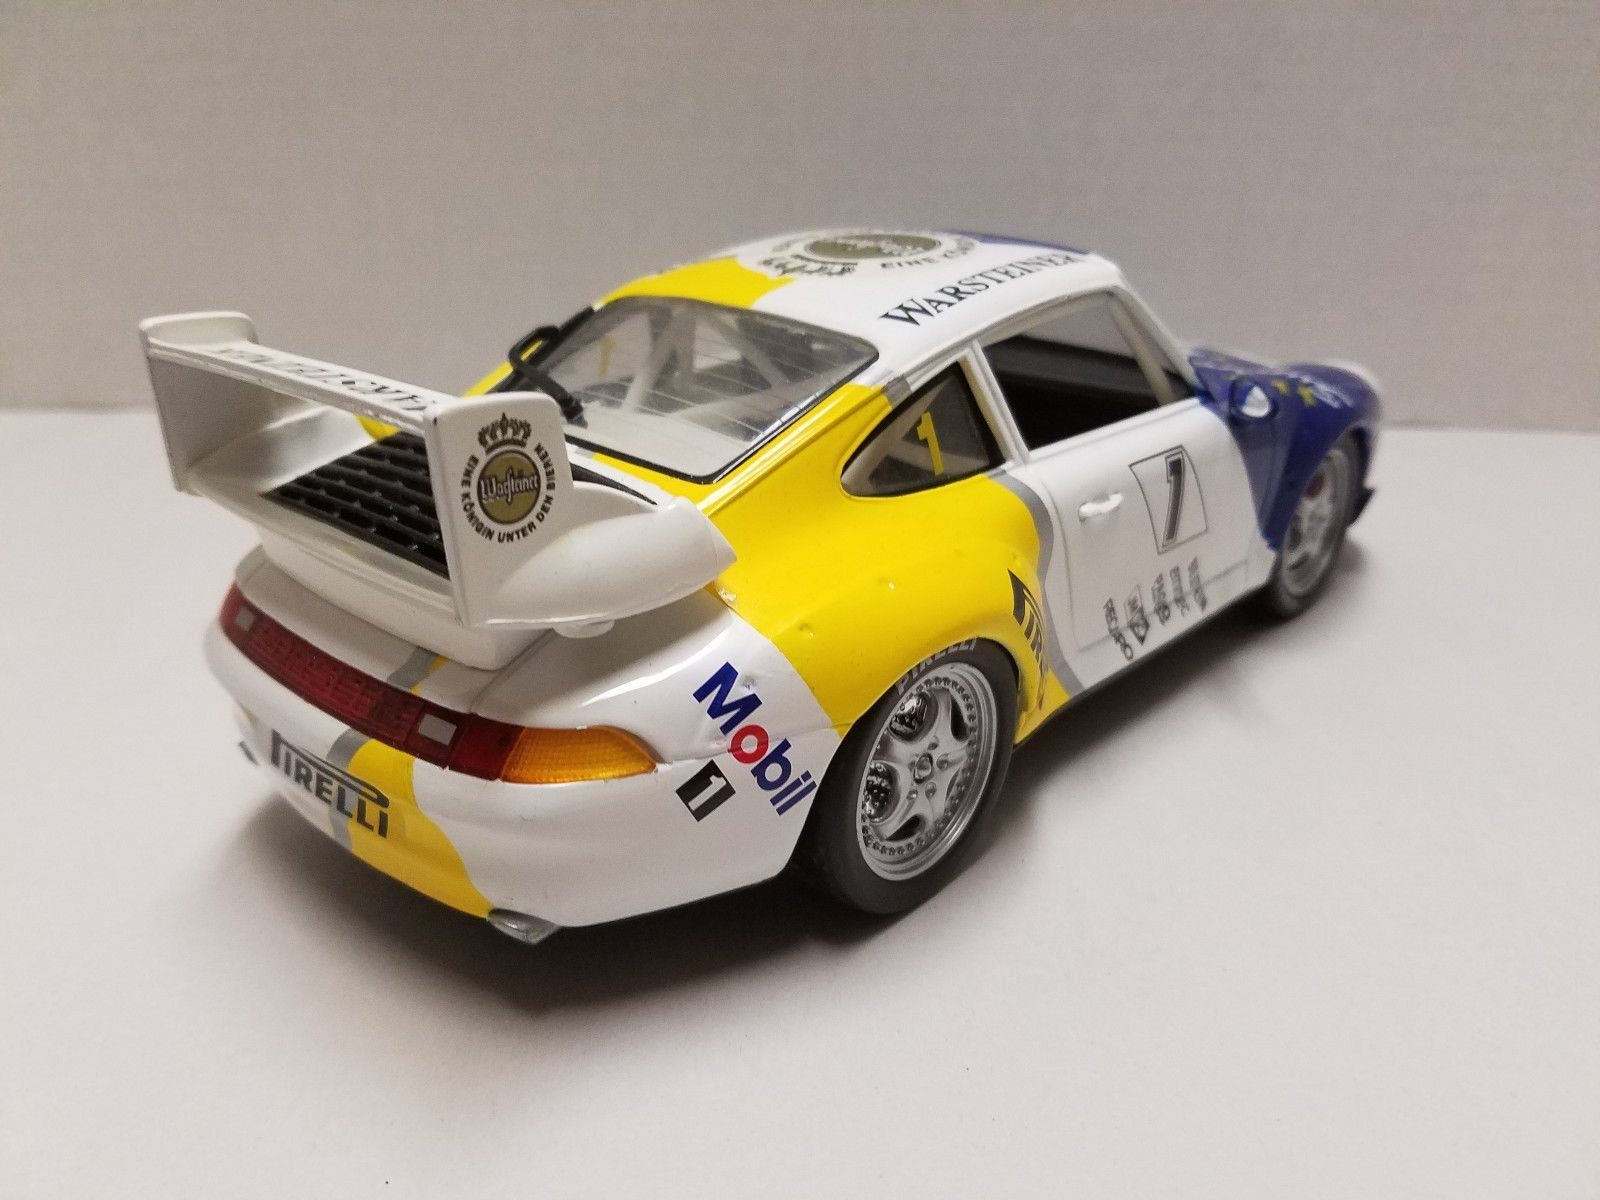 257566022_561e9a91-1fc2-4966-a8ee-44ed486a1b9c Exciting Anson Racing Porsche 911 Gt1 Cars Trend